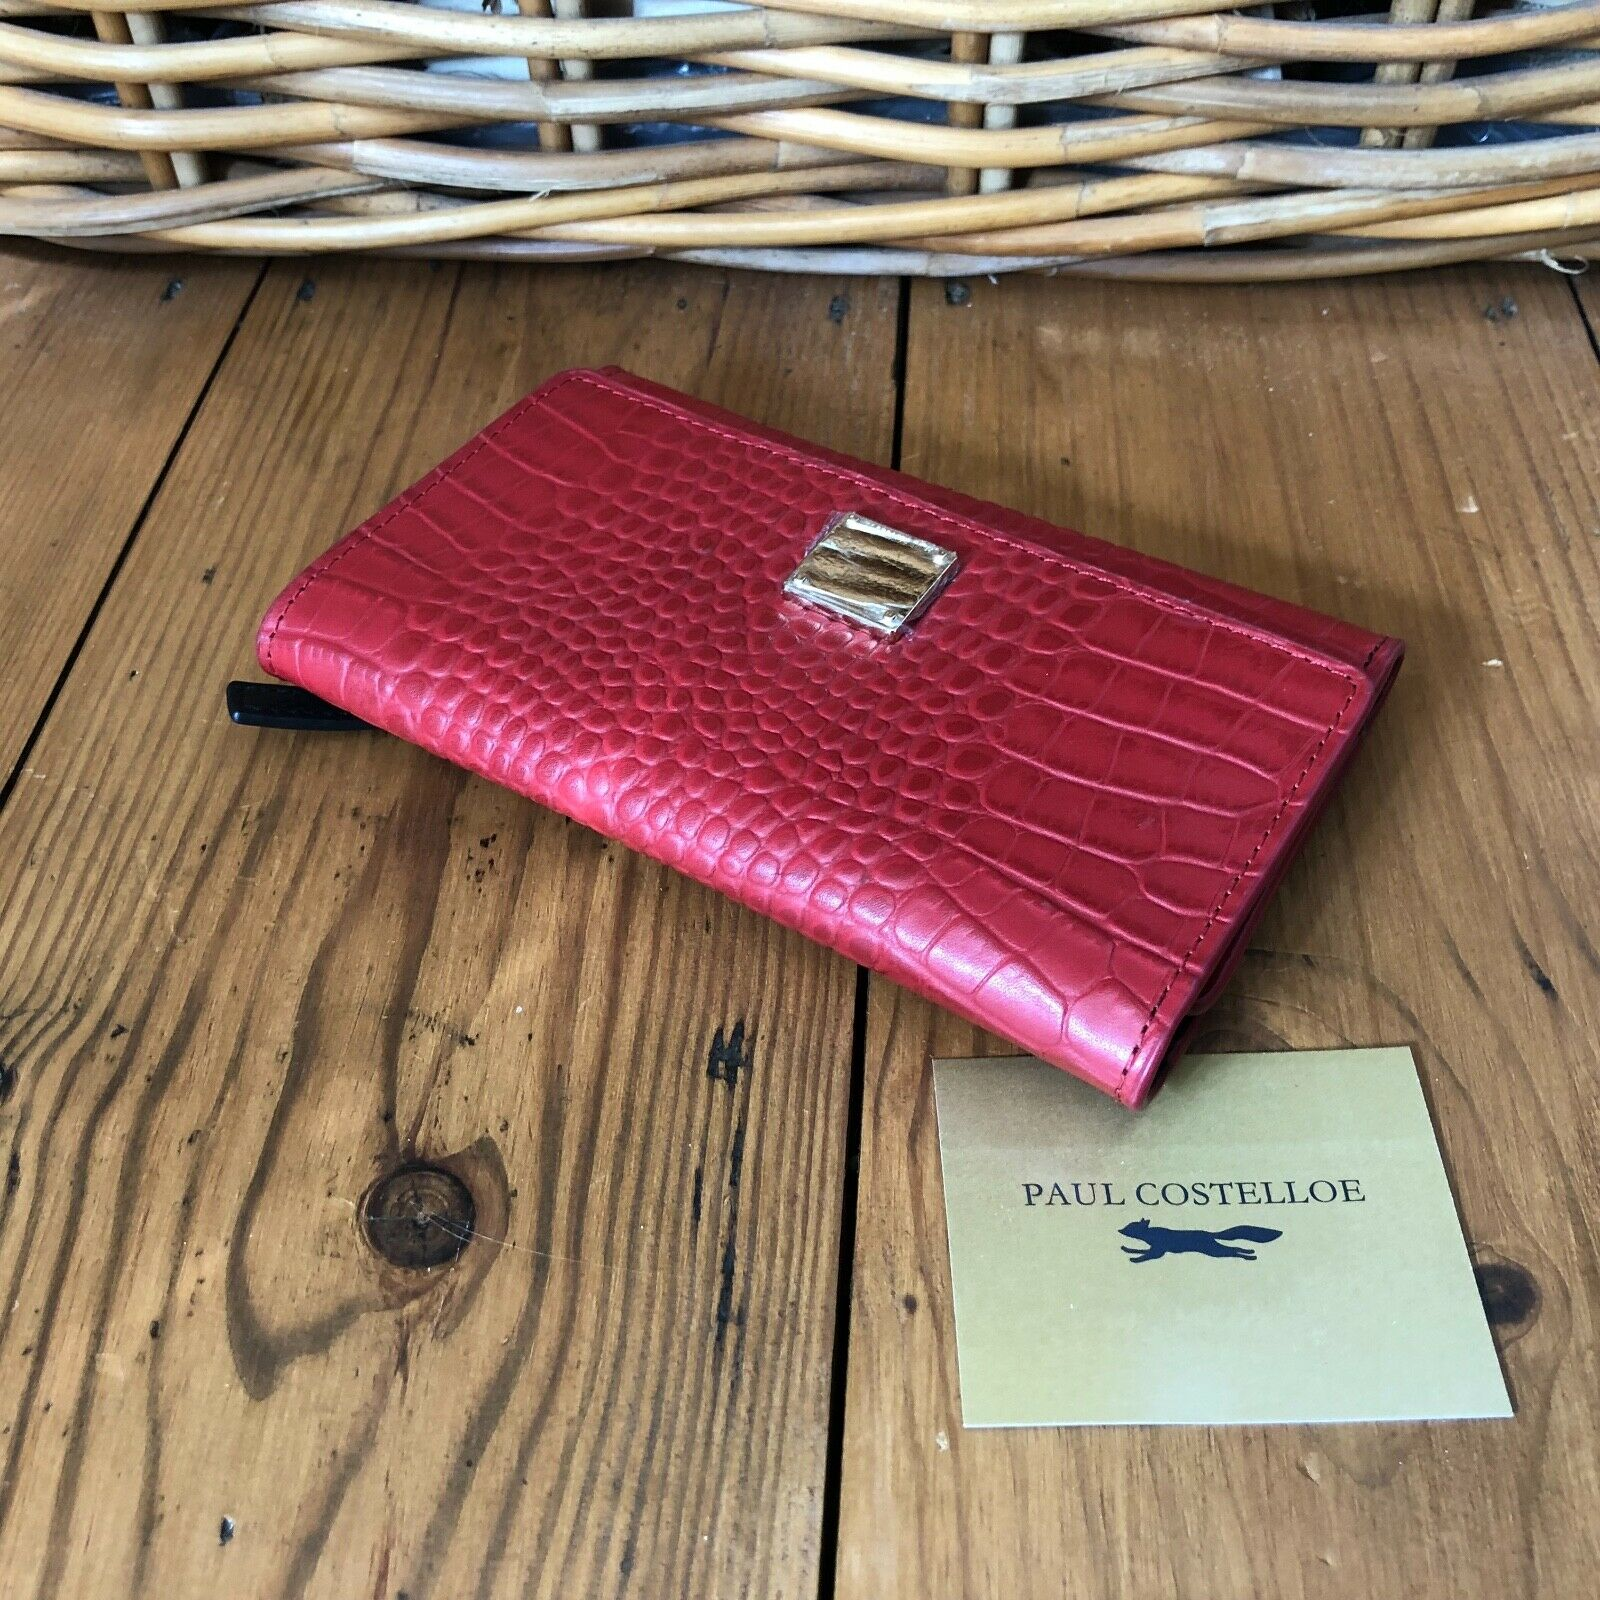 New Paul Costelloe Trifold Purse Wallet Envelope Zip Pouch Leather Red Reptile